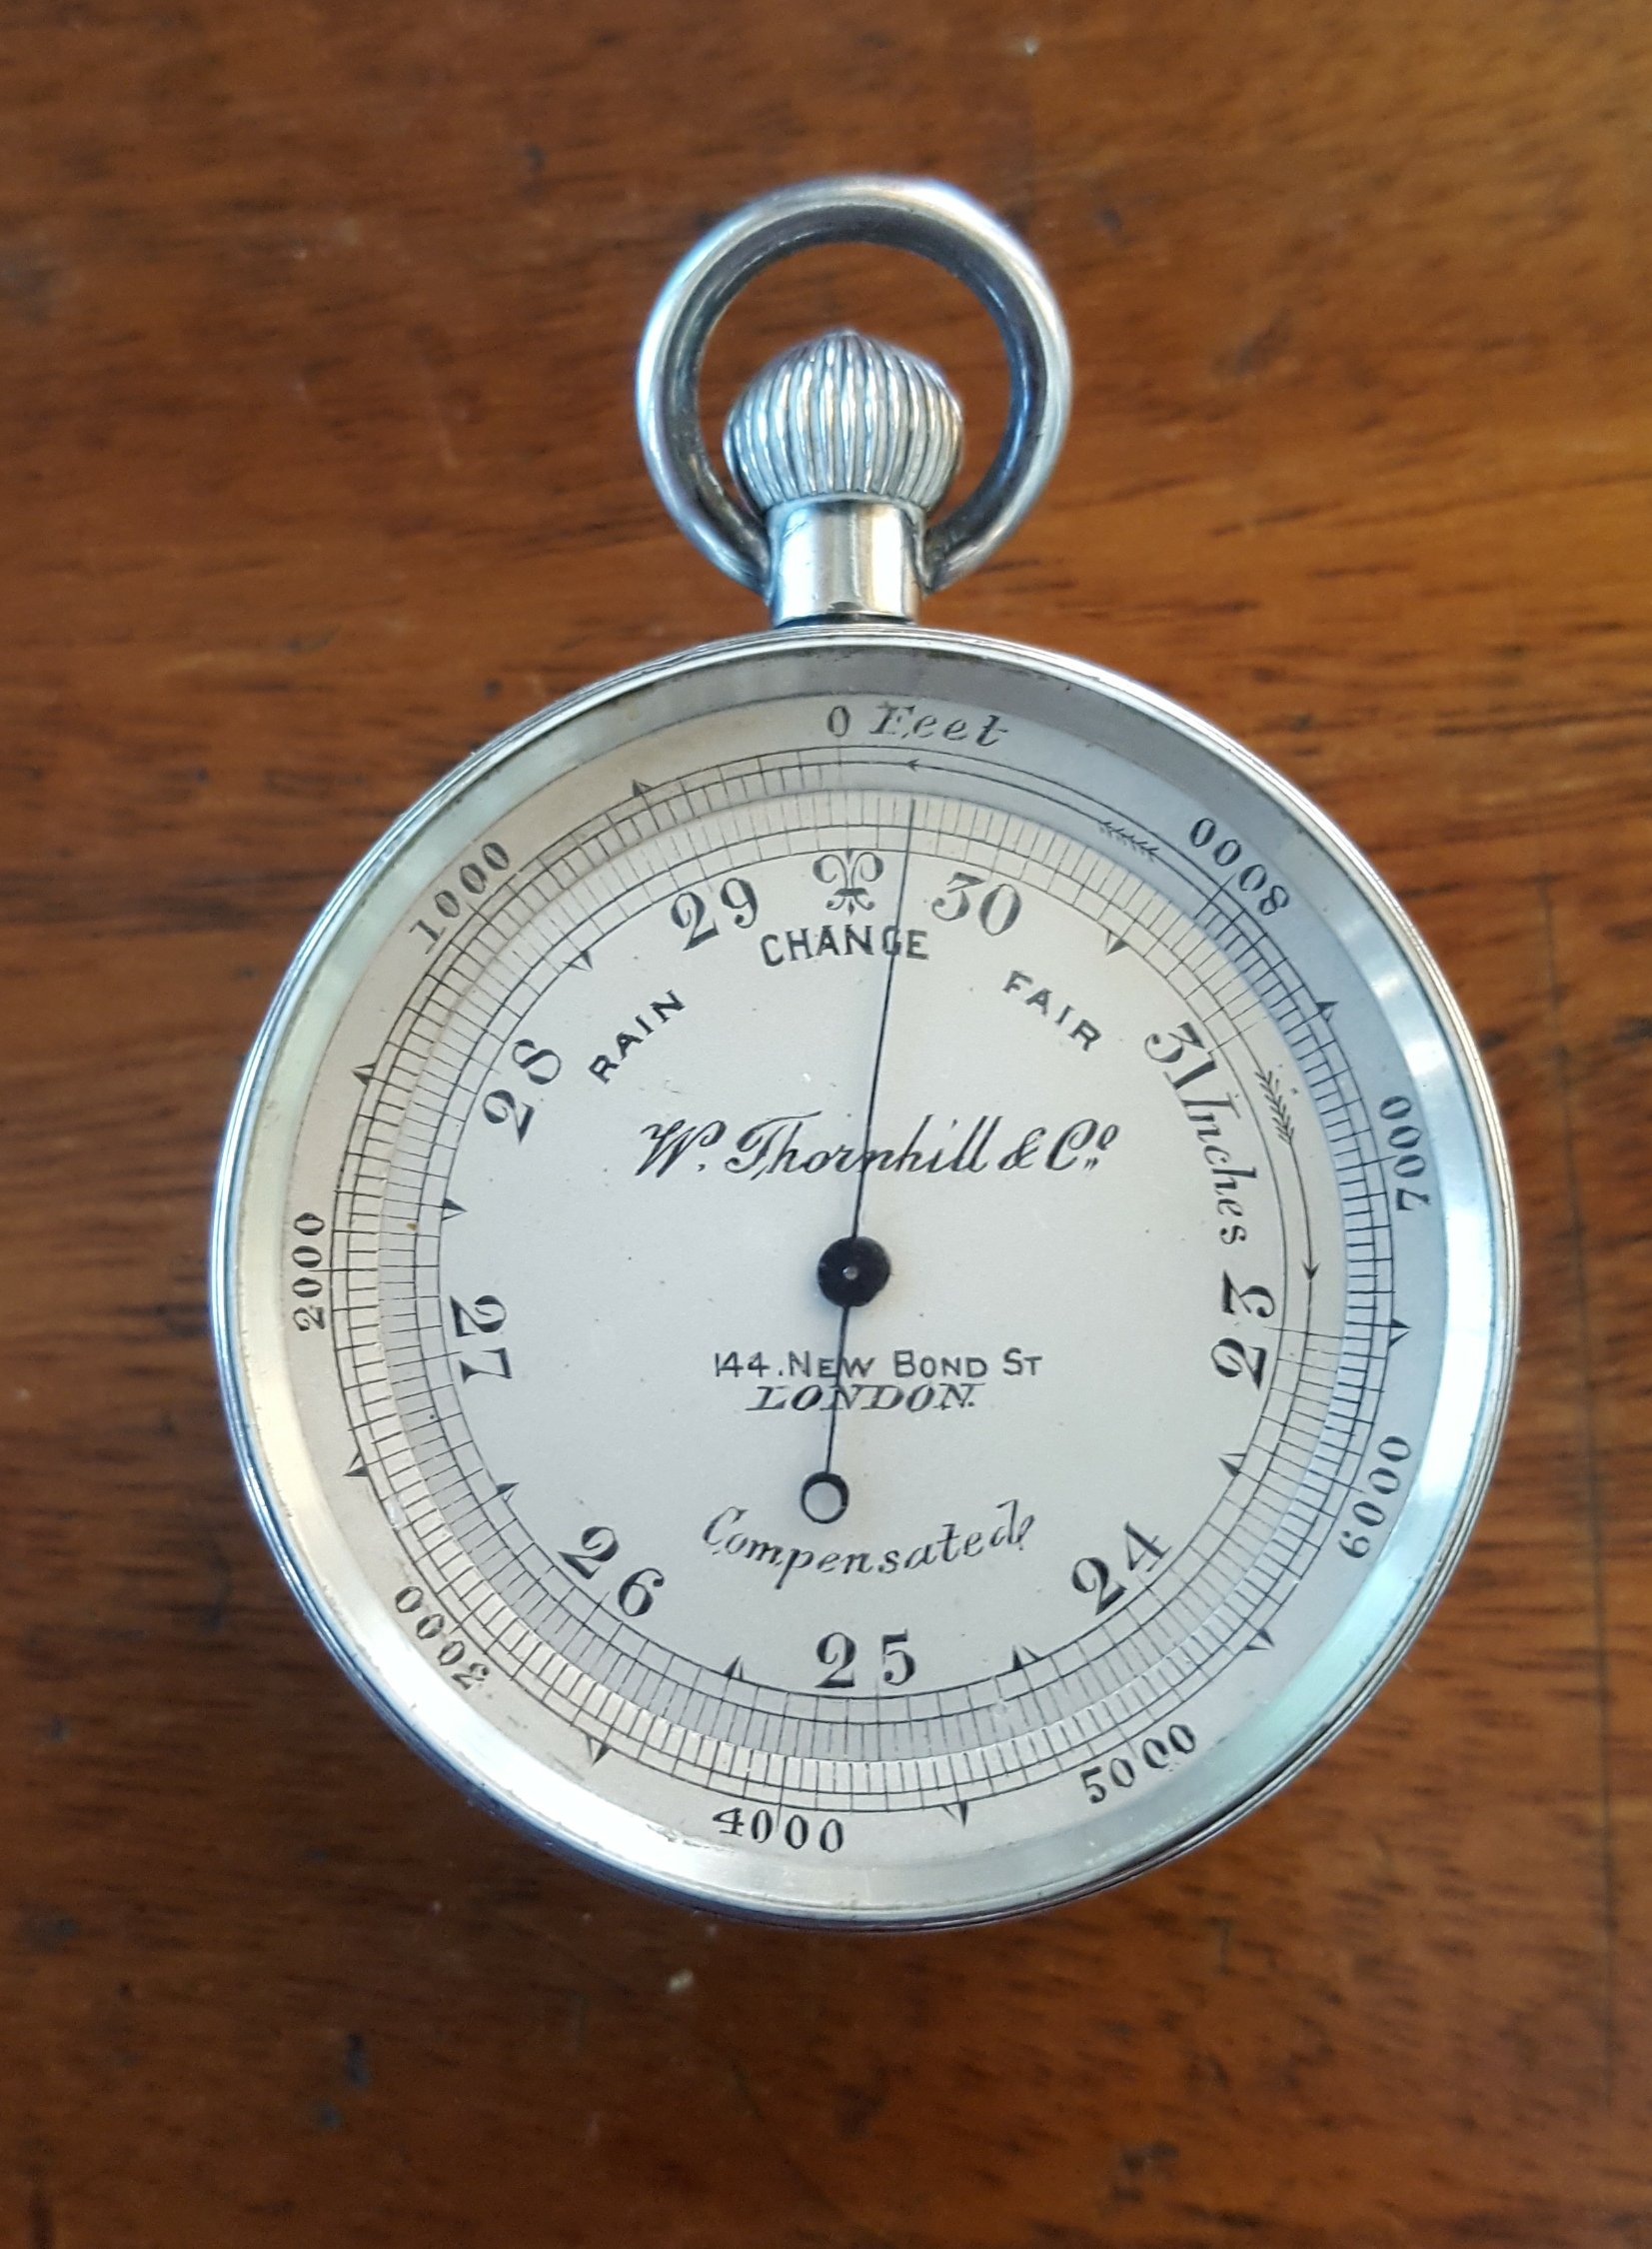 Lot 26 - Antique Sterling Silver W Thornhill & Co. Compensated Pocket Barometer with Compass